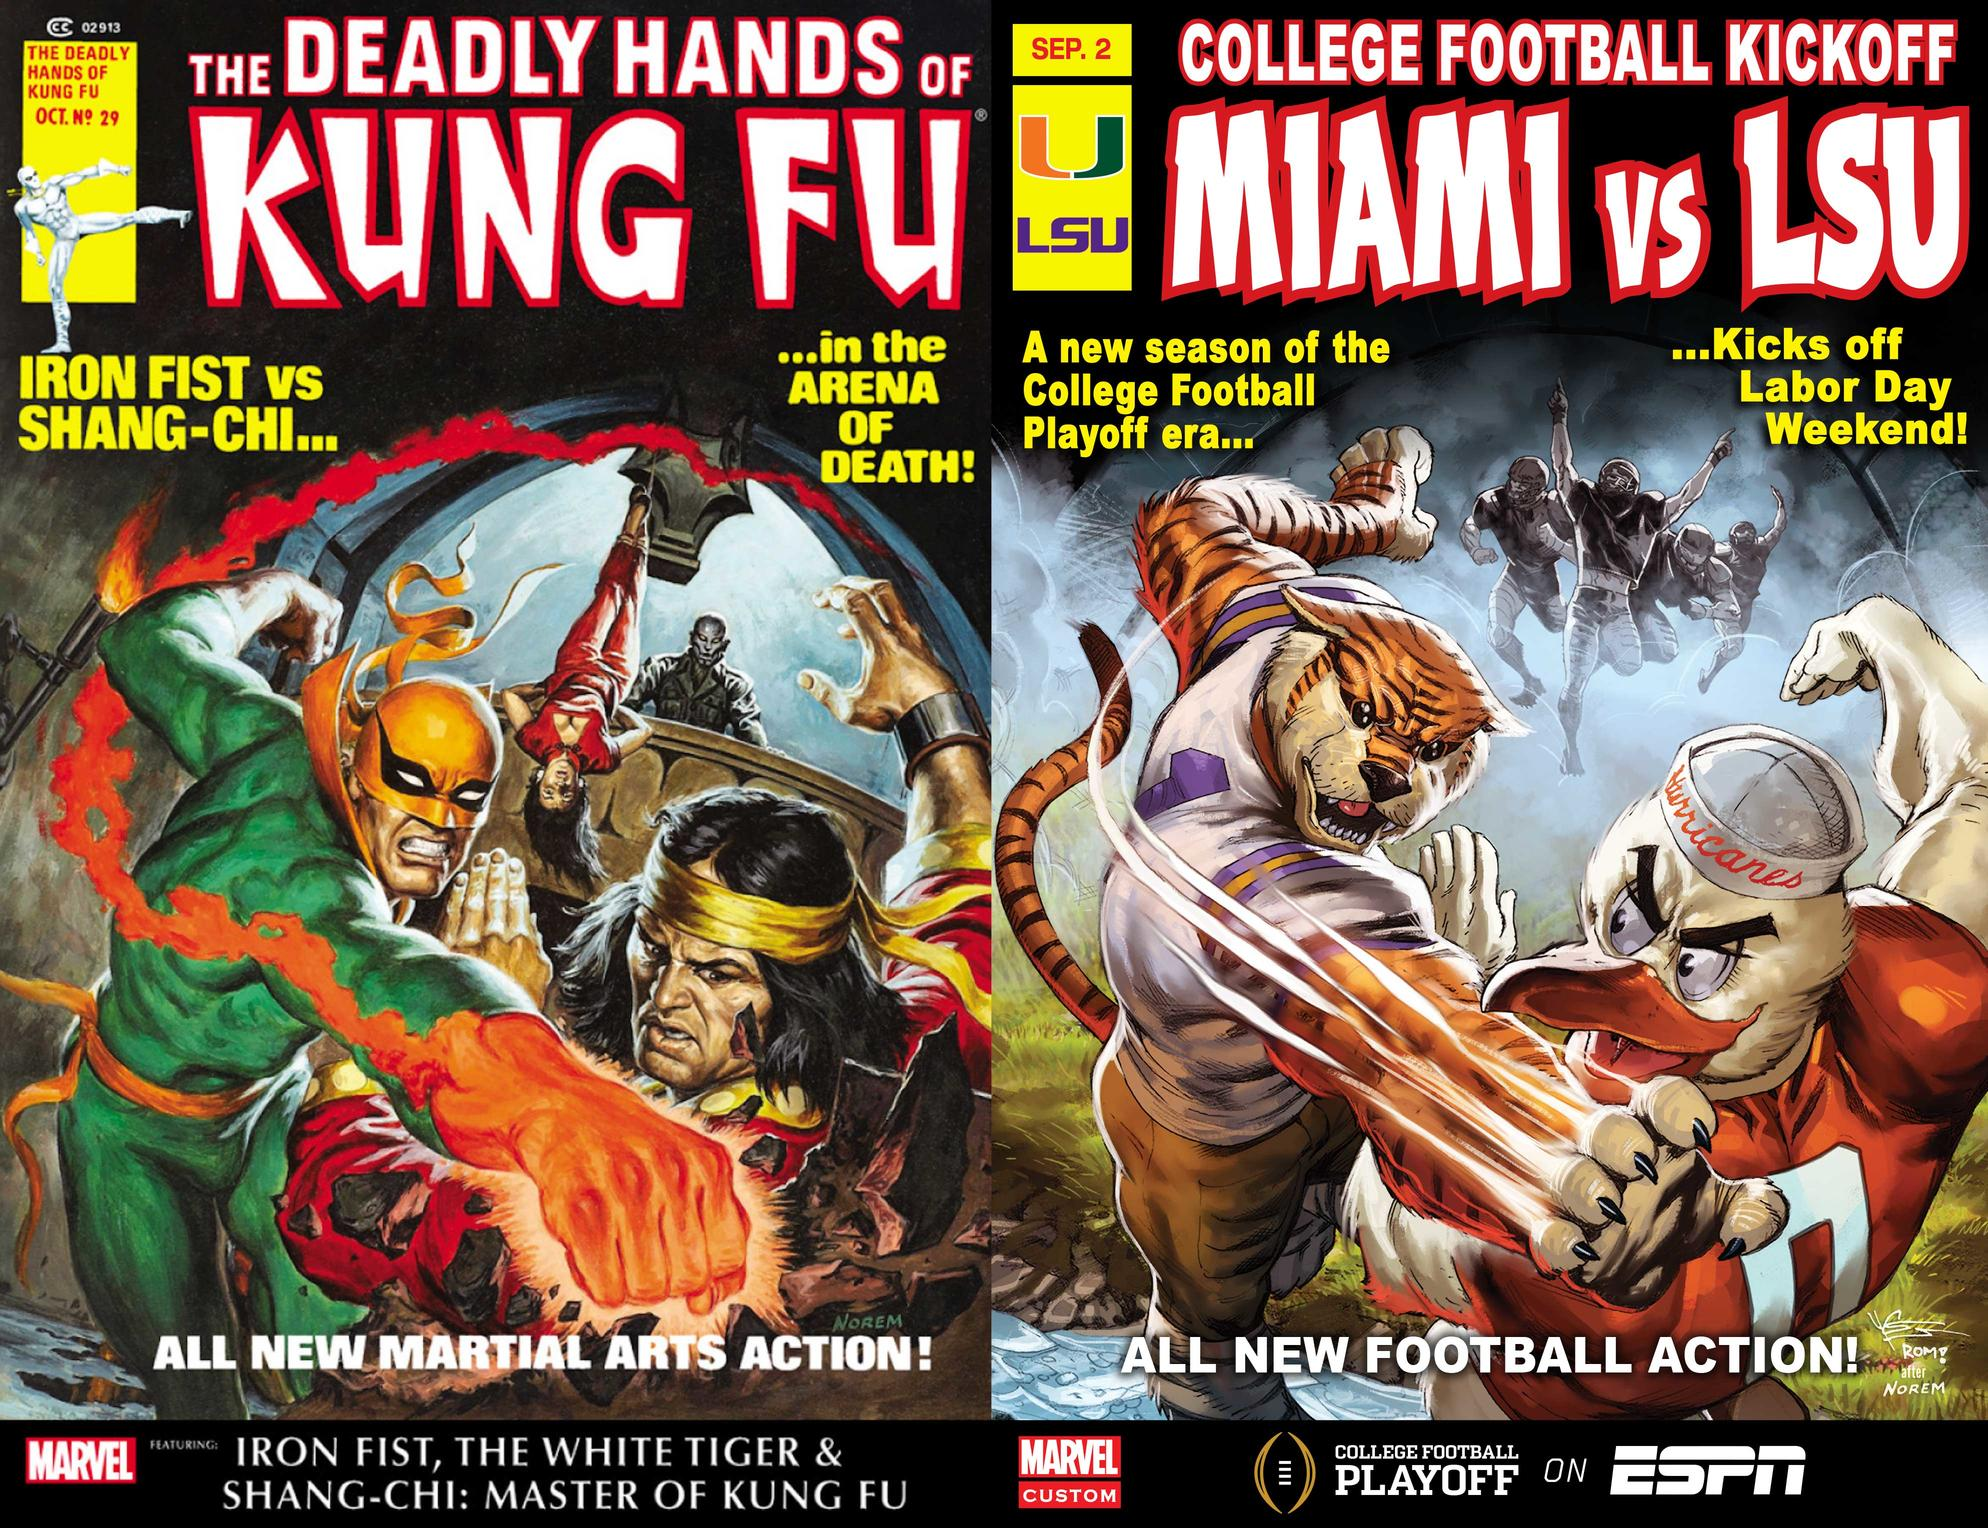 LSU vs Miami mascot cover